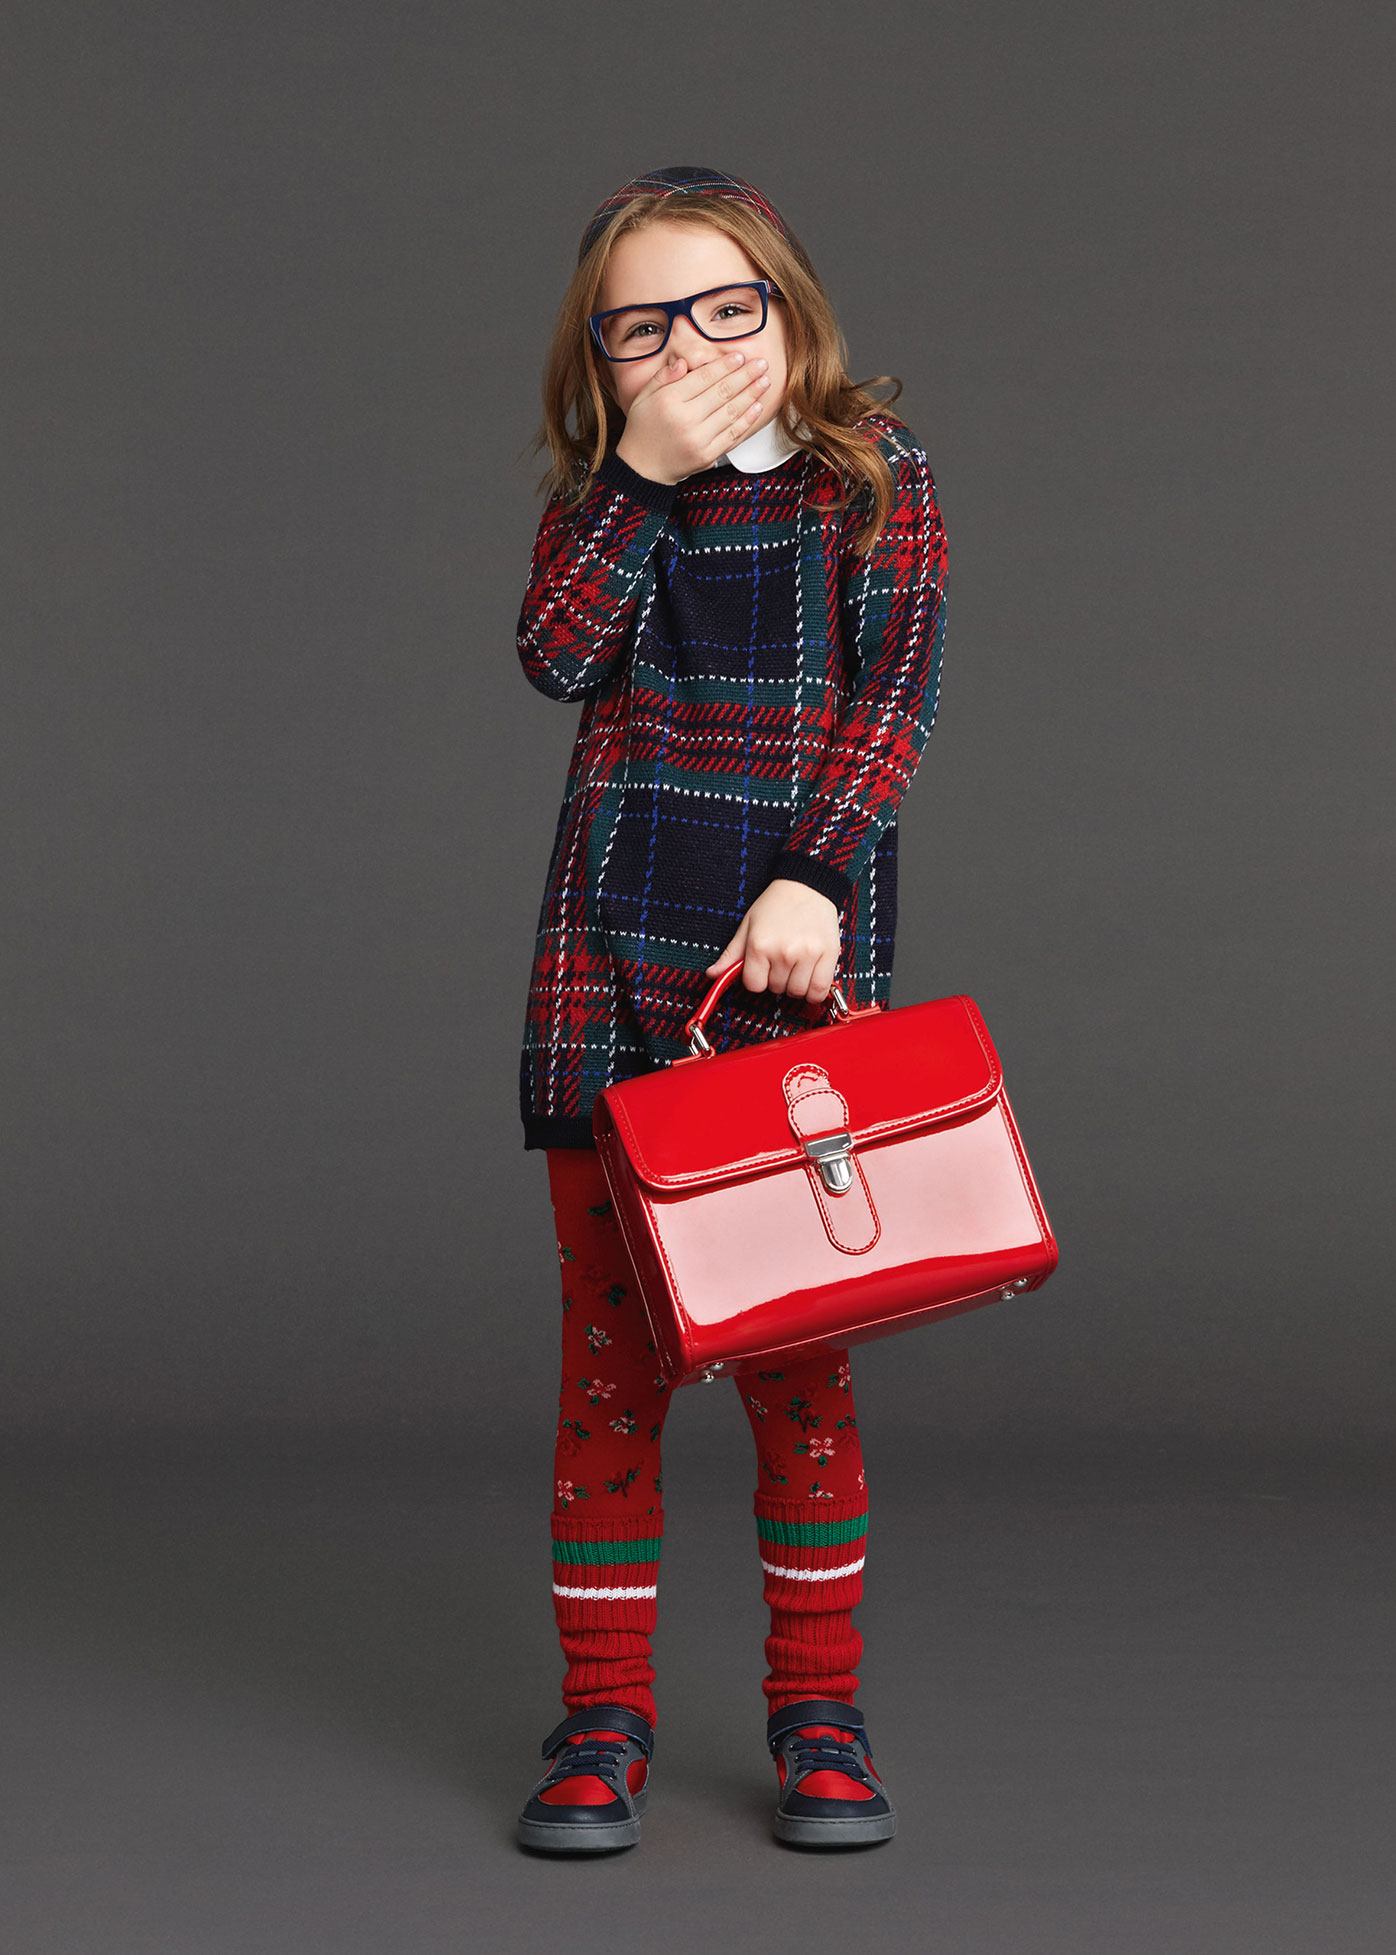 Tartan Styles For Kids Clothes